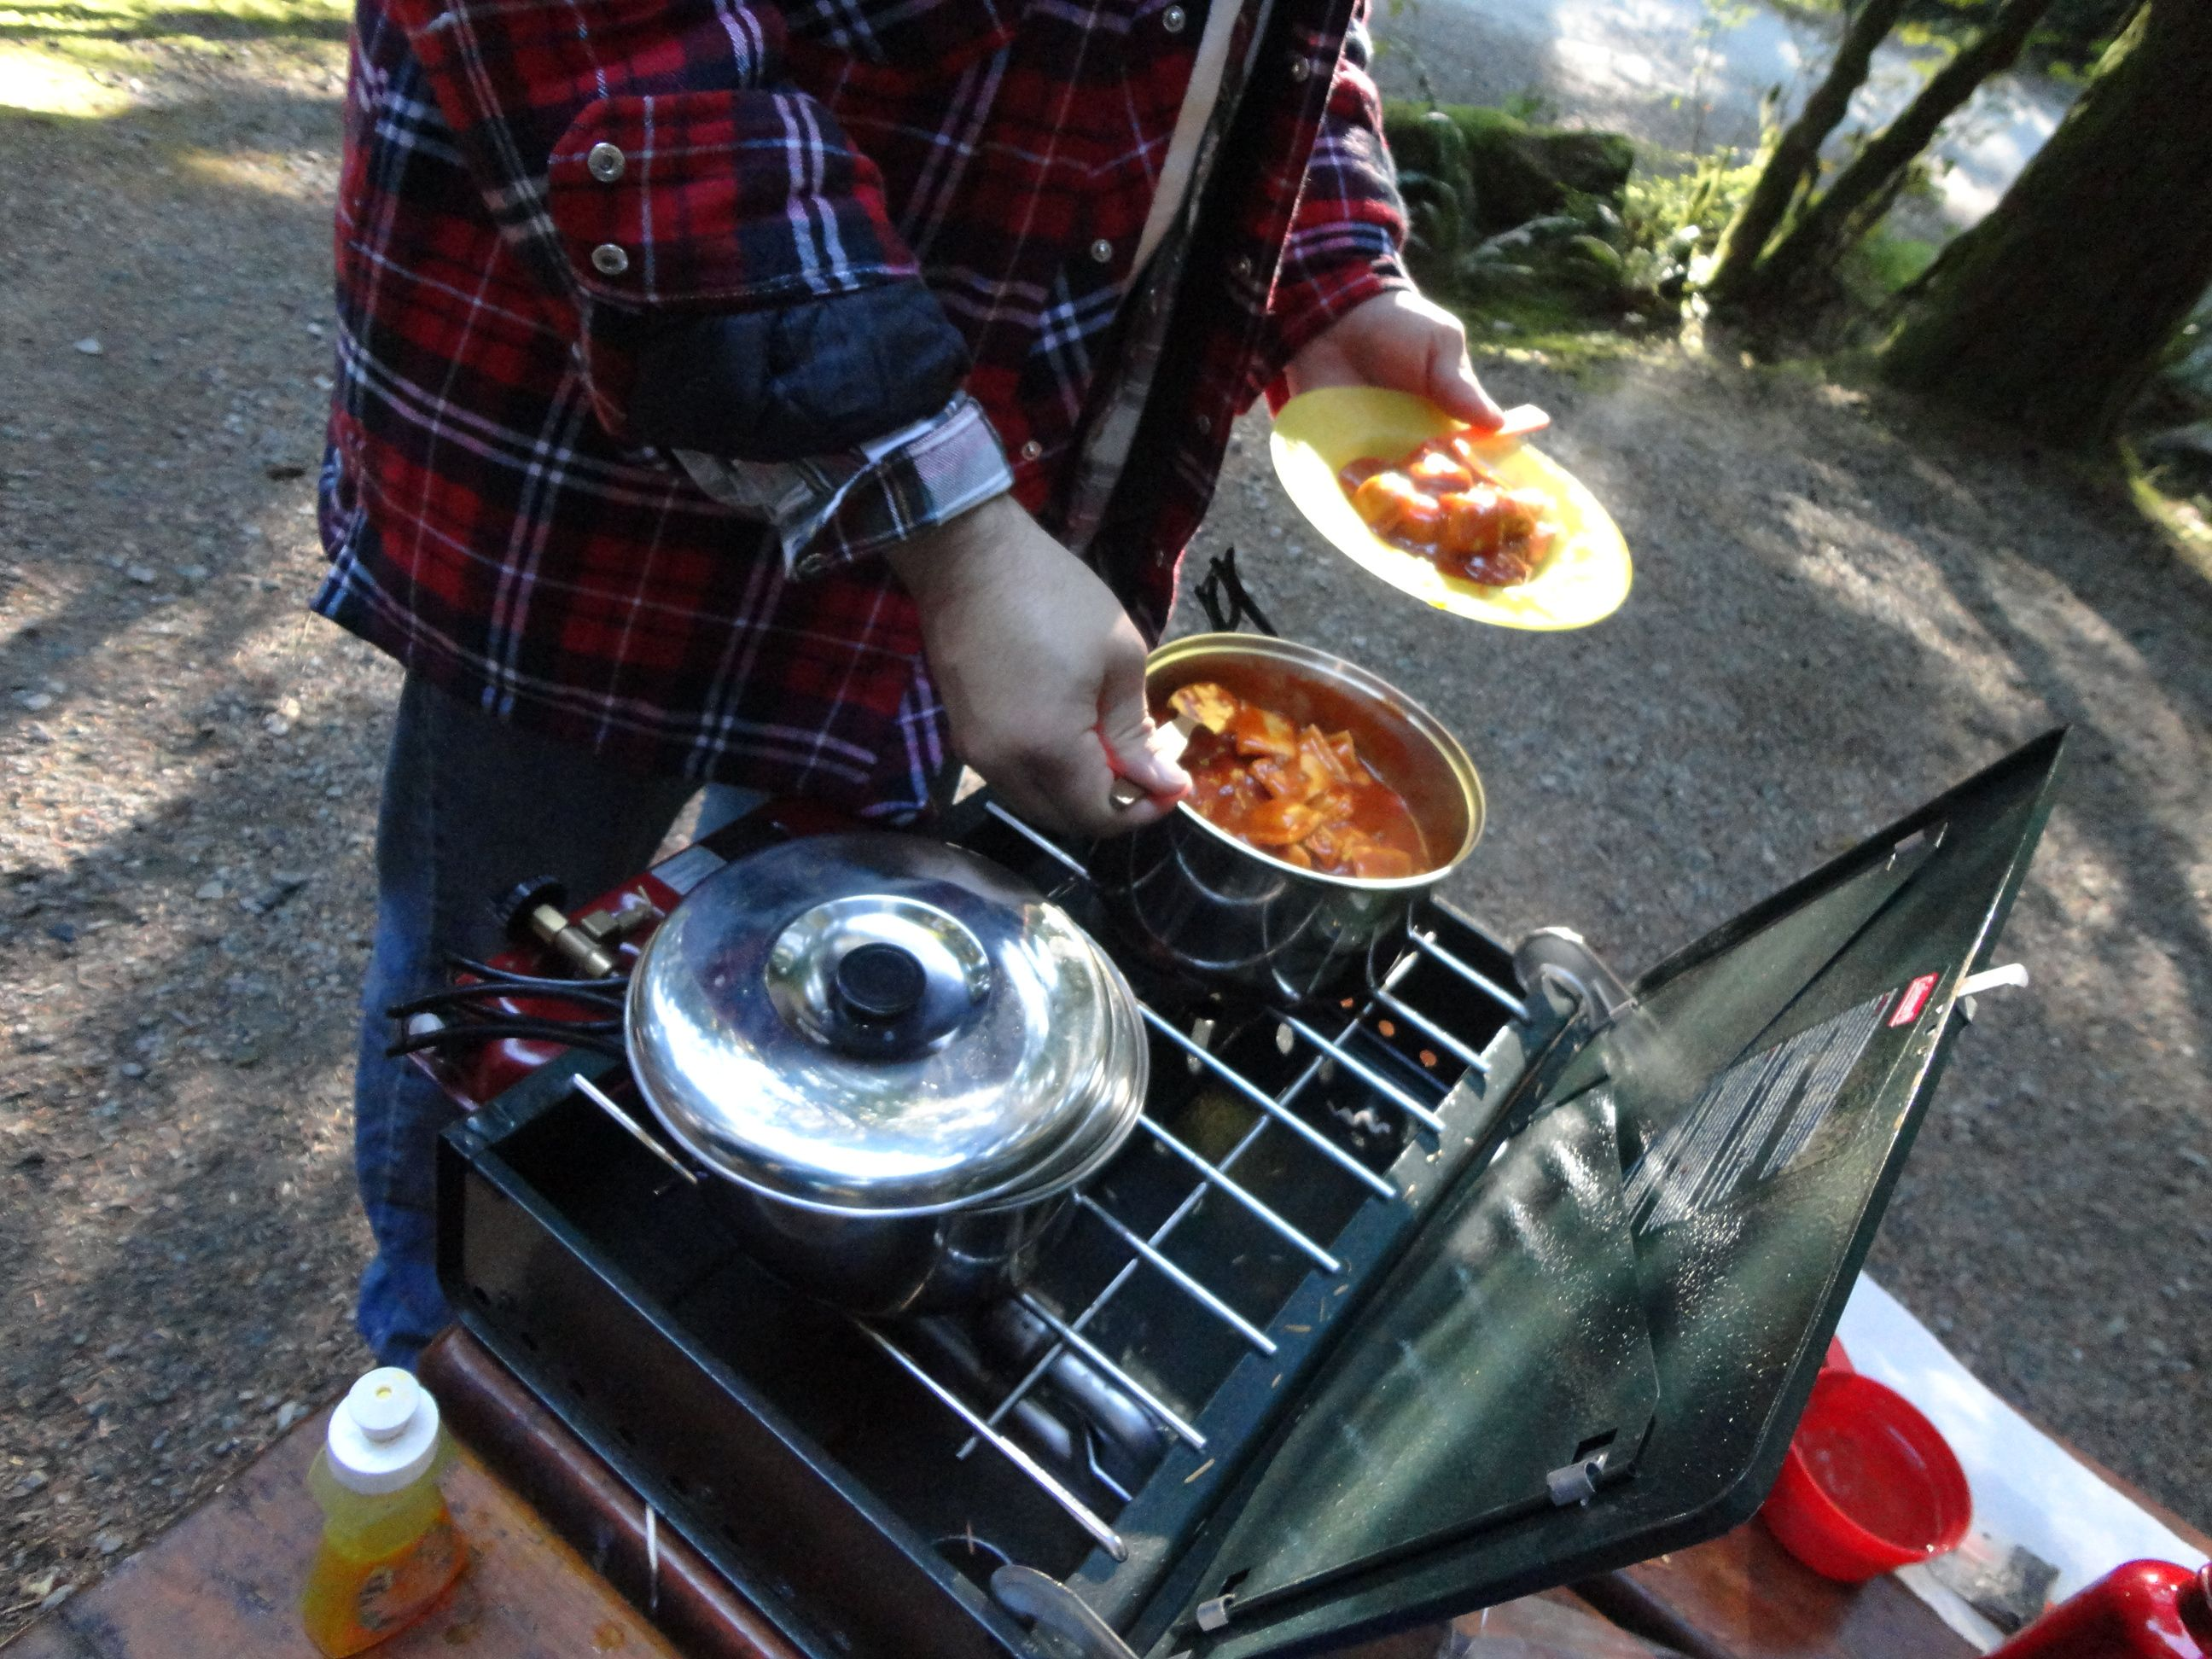 Camping slop! The fresh air makes everything taste yummy!